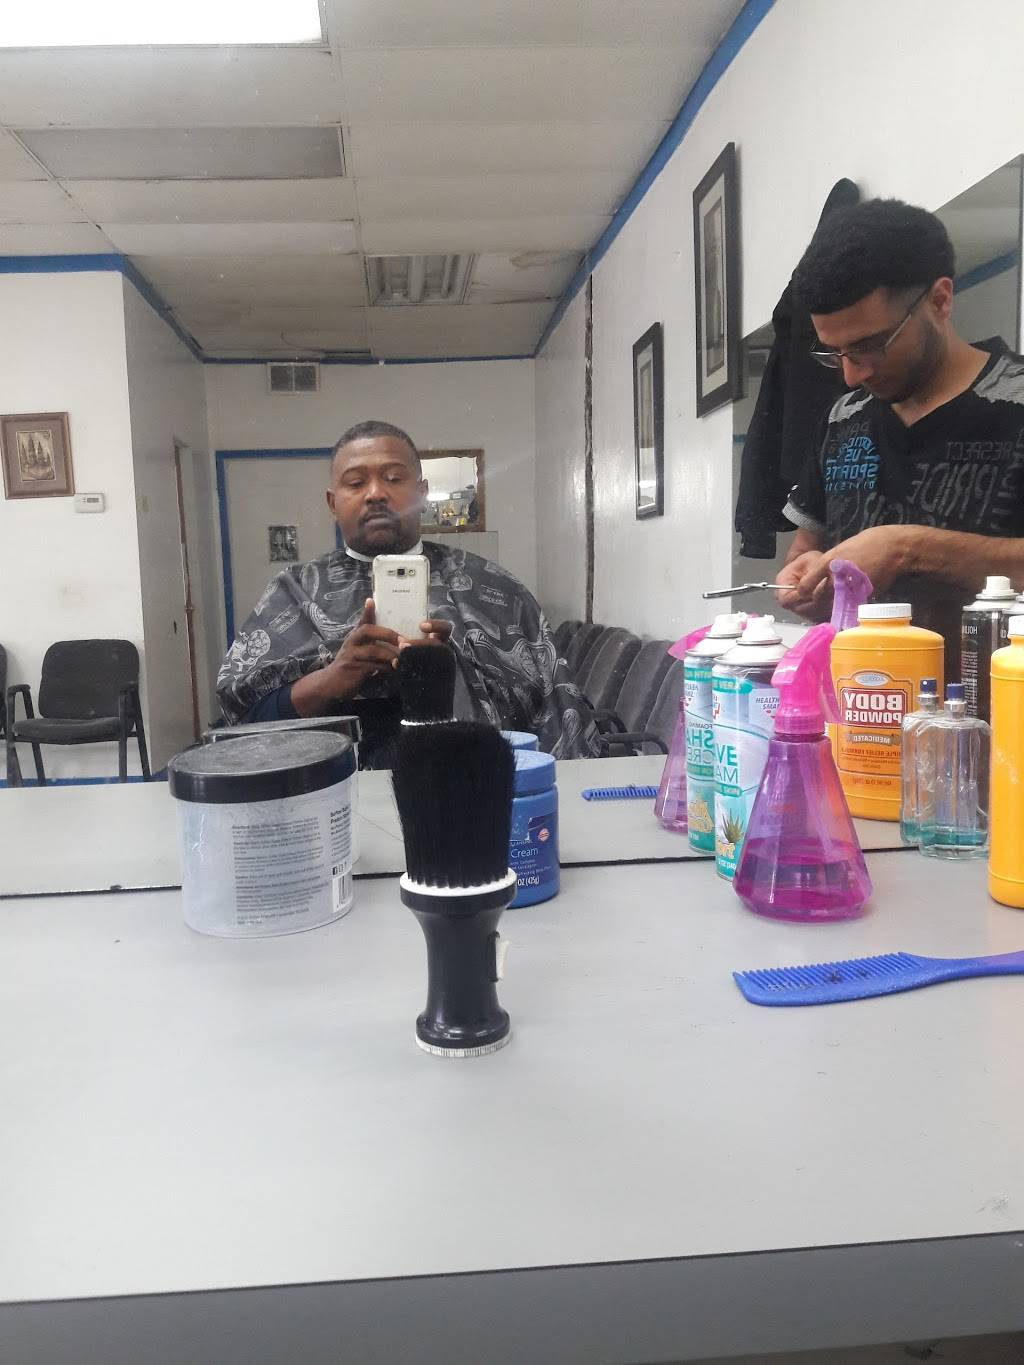 Zs Barbershop - hair care  | Photo 2 of 6 | Address: 8031 McGraw Ave, Detroit, MI 48210, USA | Phone: (313) 205-3222